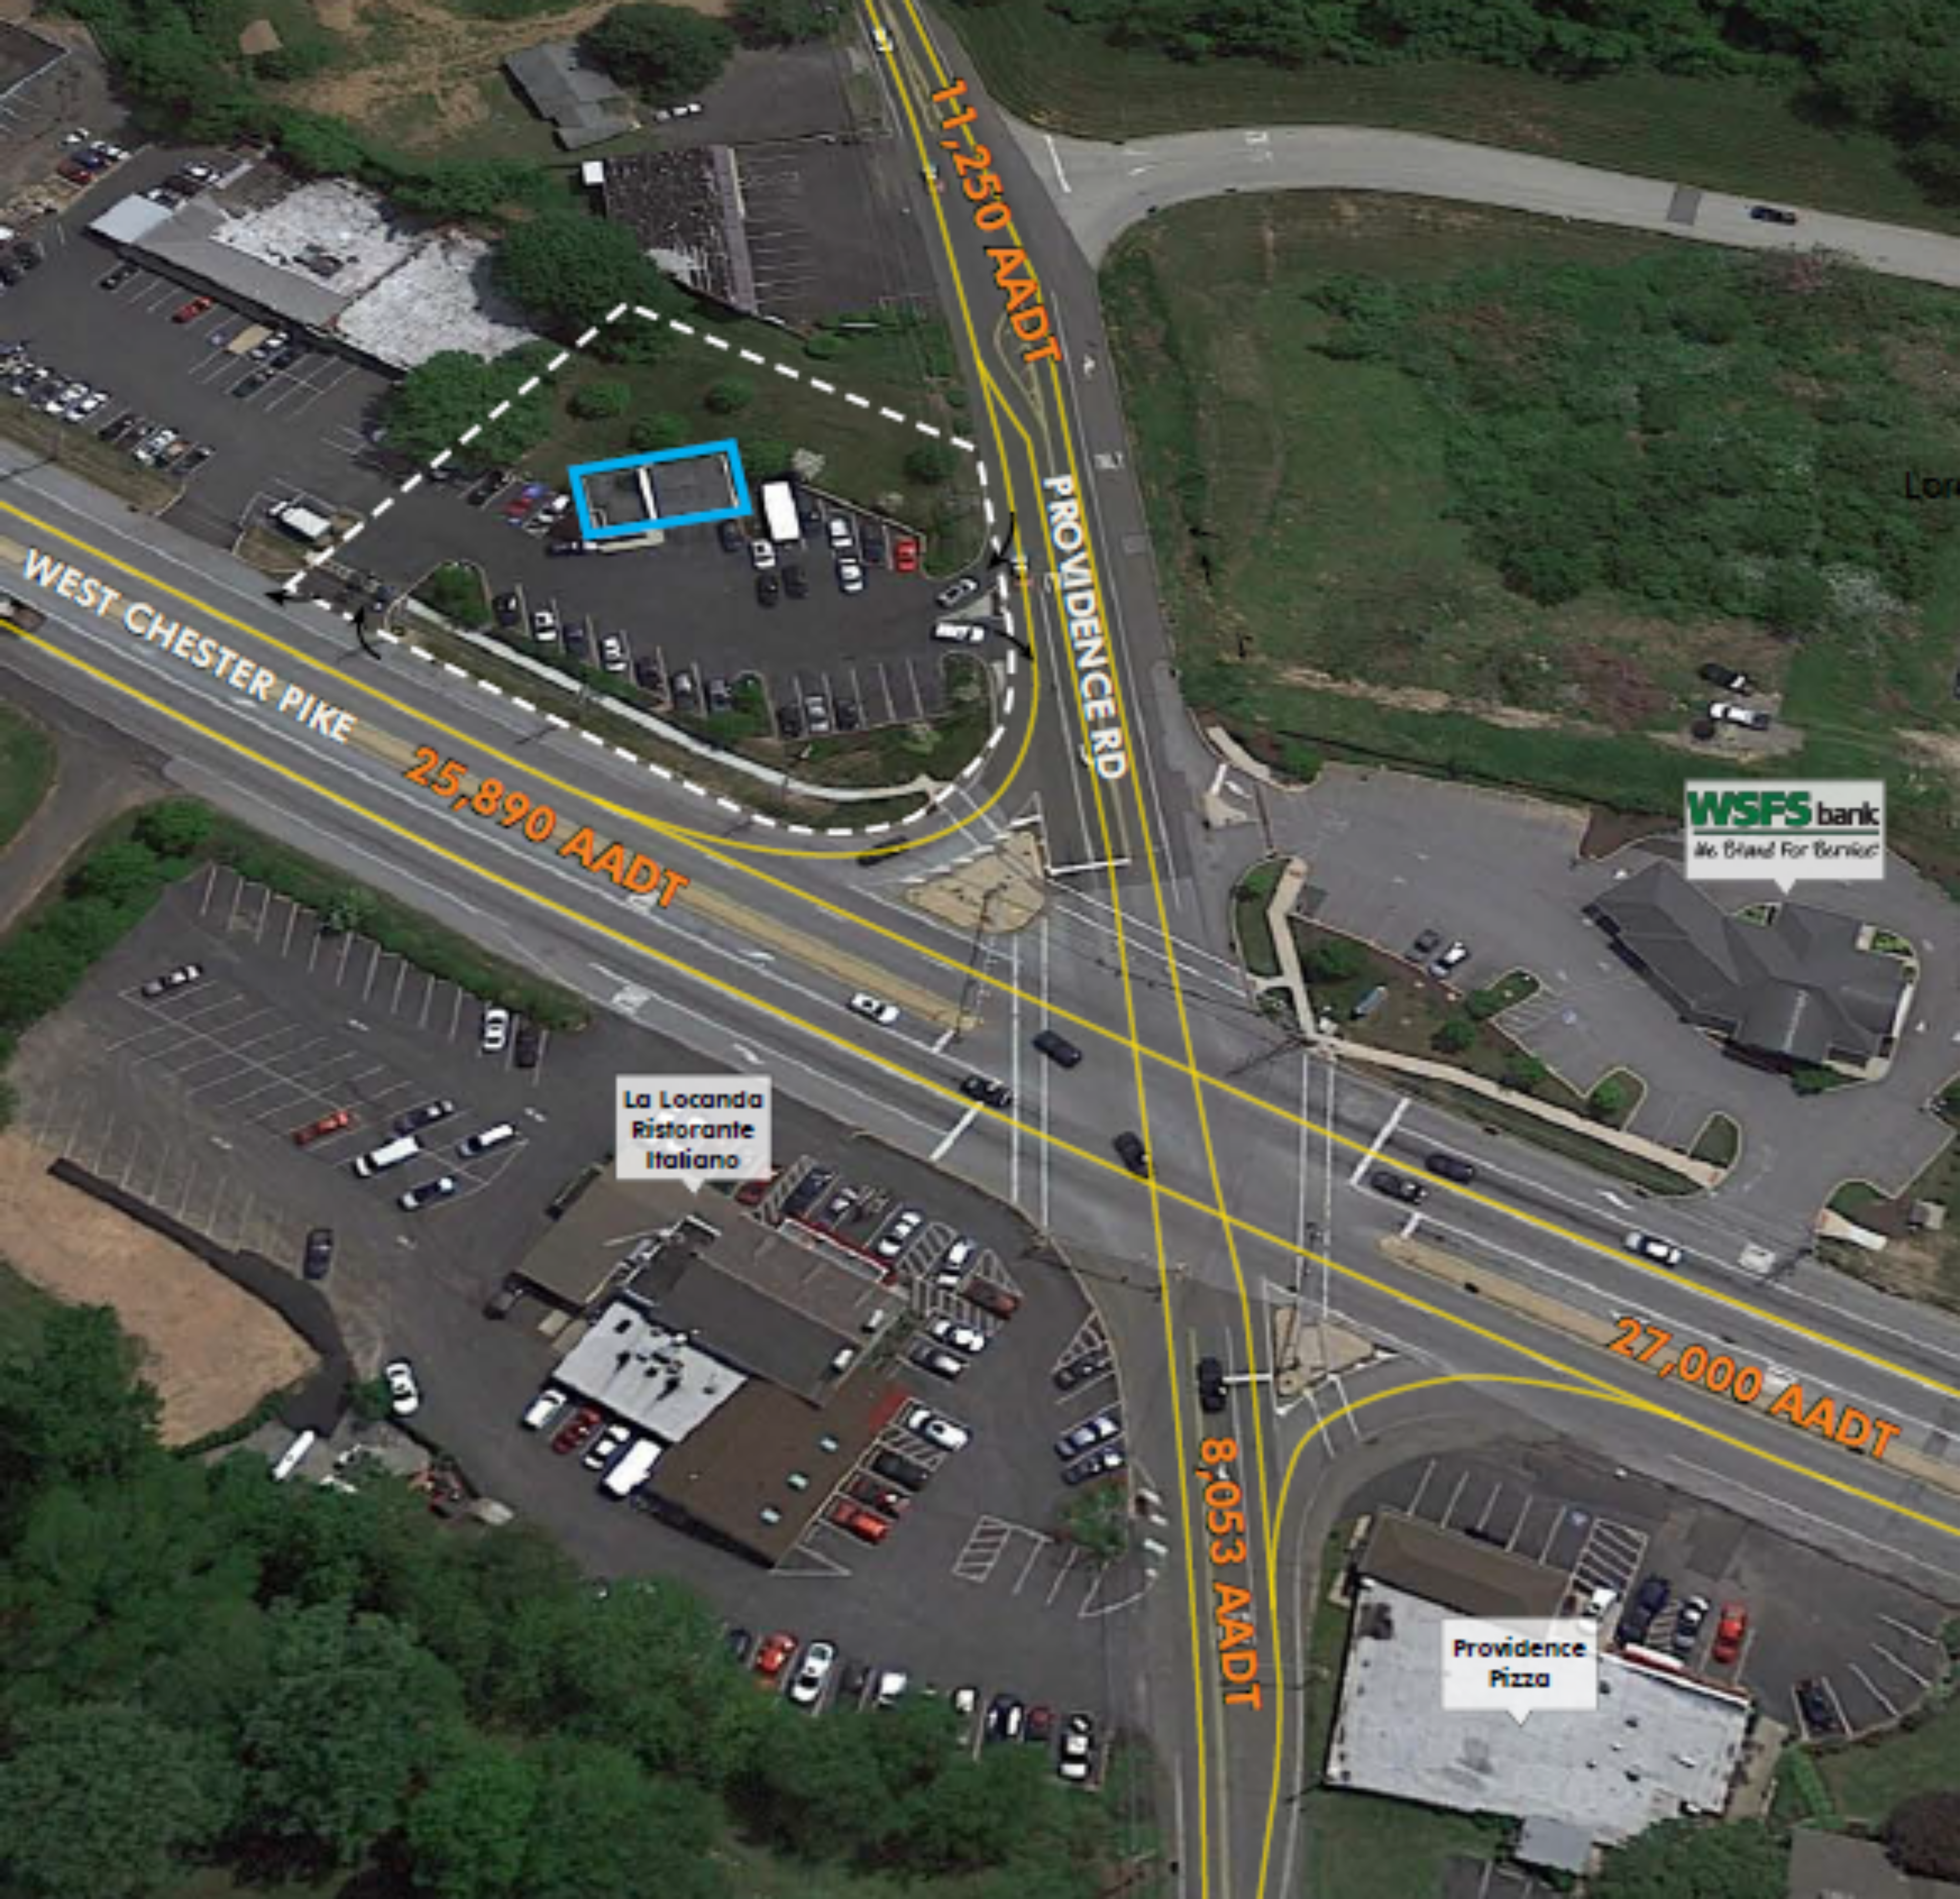 Route 3 (West Chester Pike) - Newtown Square, PA: site plan